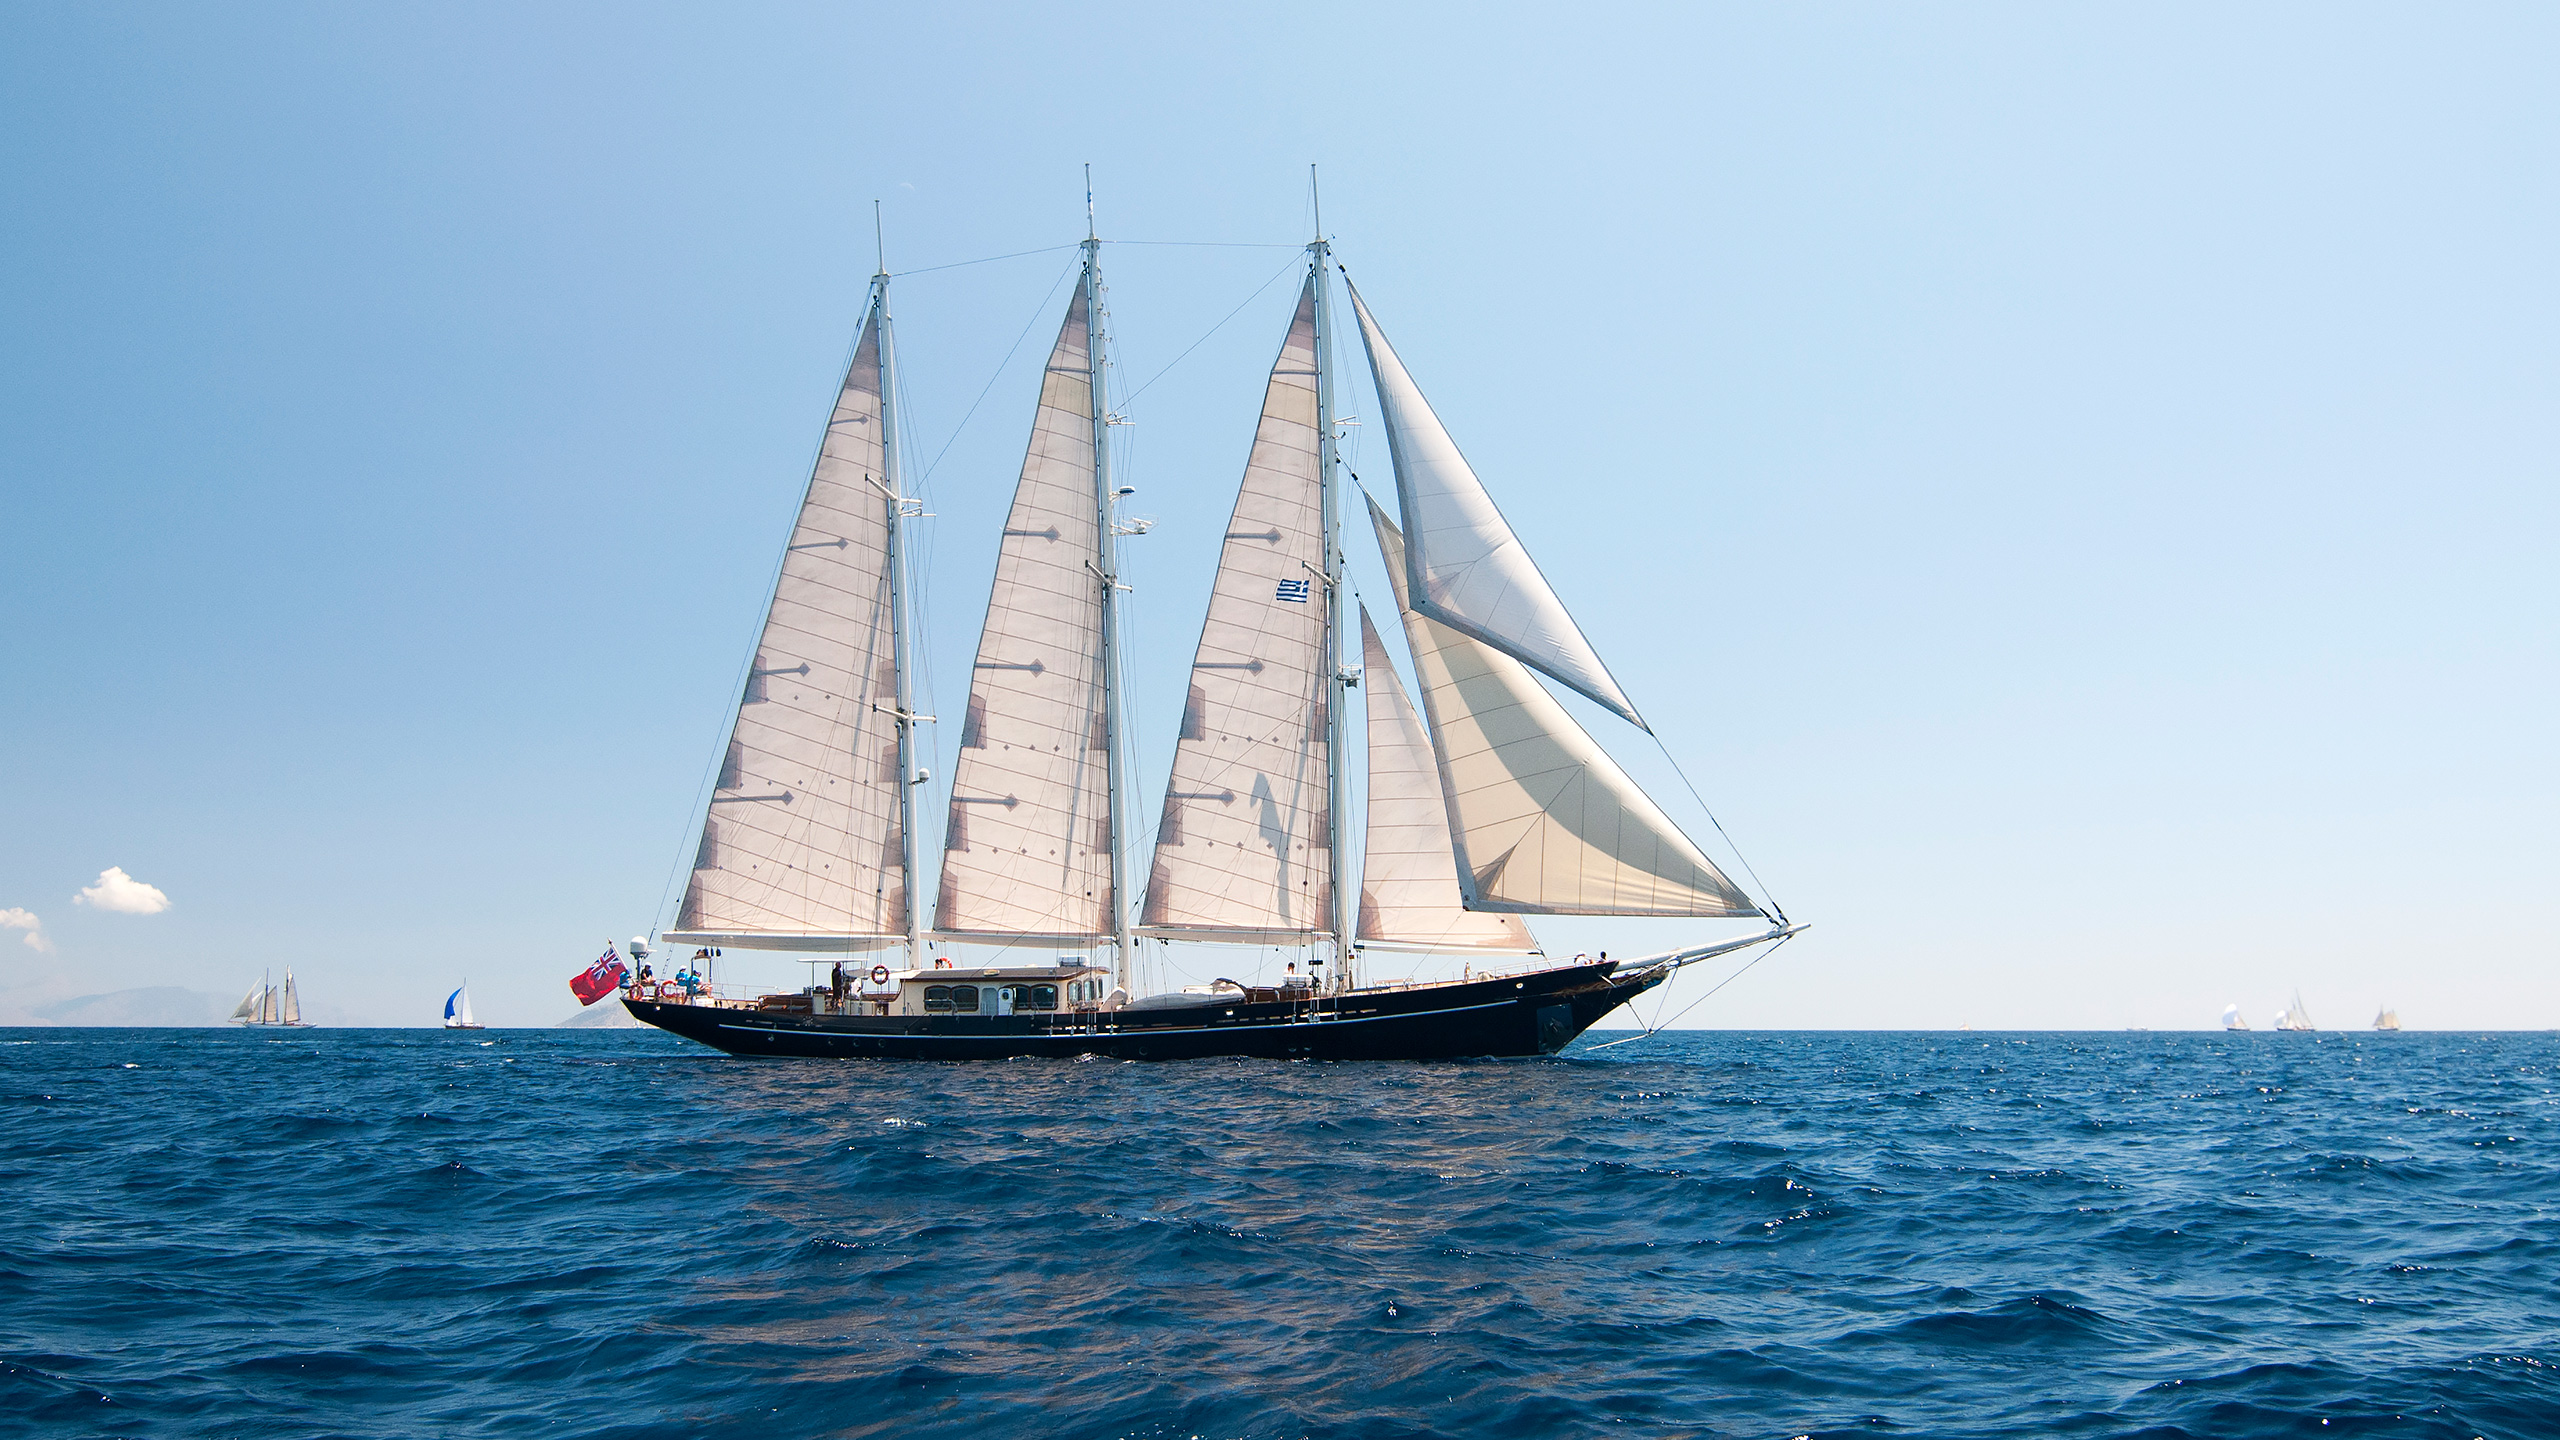 the-starboard-aspect-of-restored-classic-schooner-sailing-super-yacht-malcolm-miller-with-her-sails-up